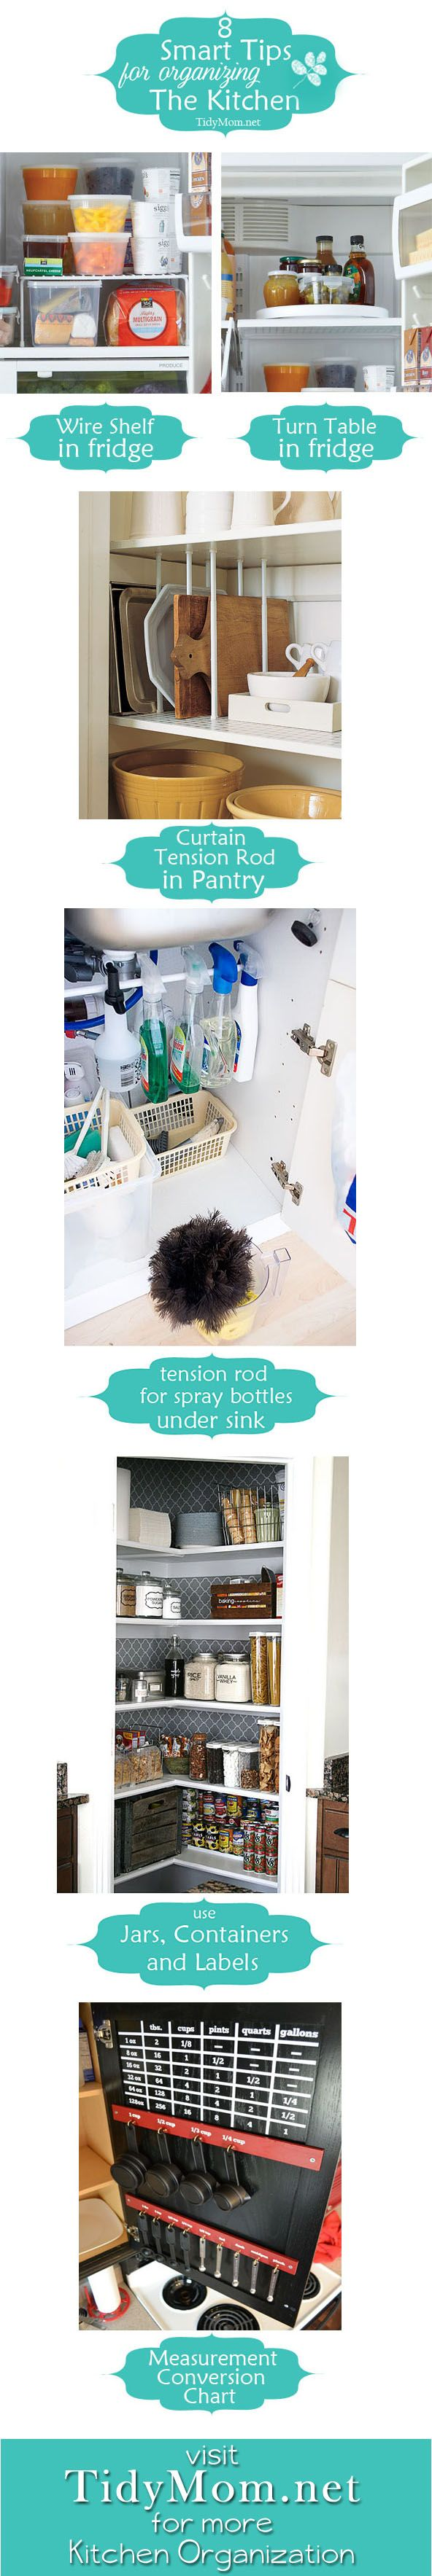 8 smart organizing tips for the kitchen at TidyMom.net